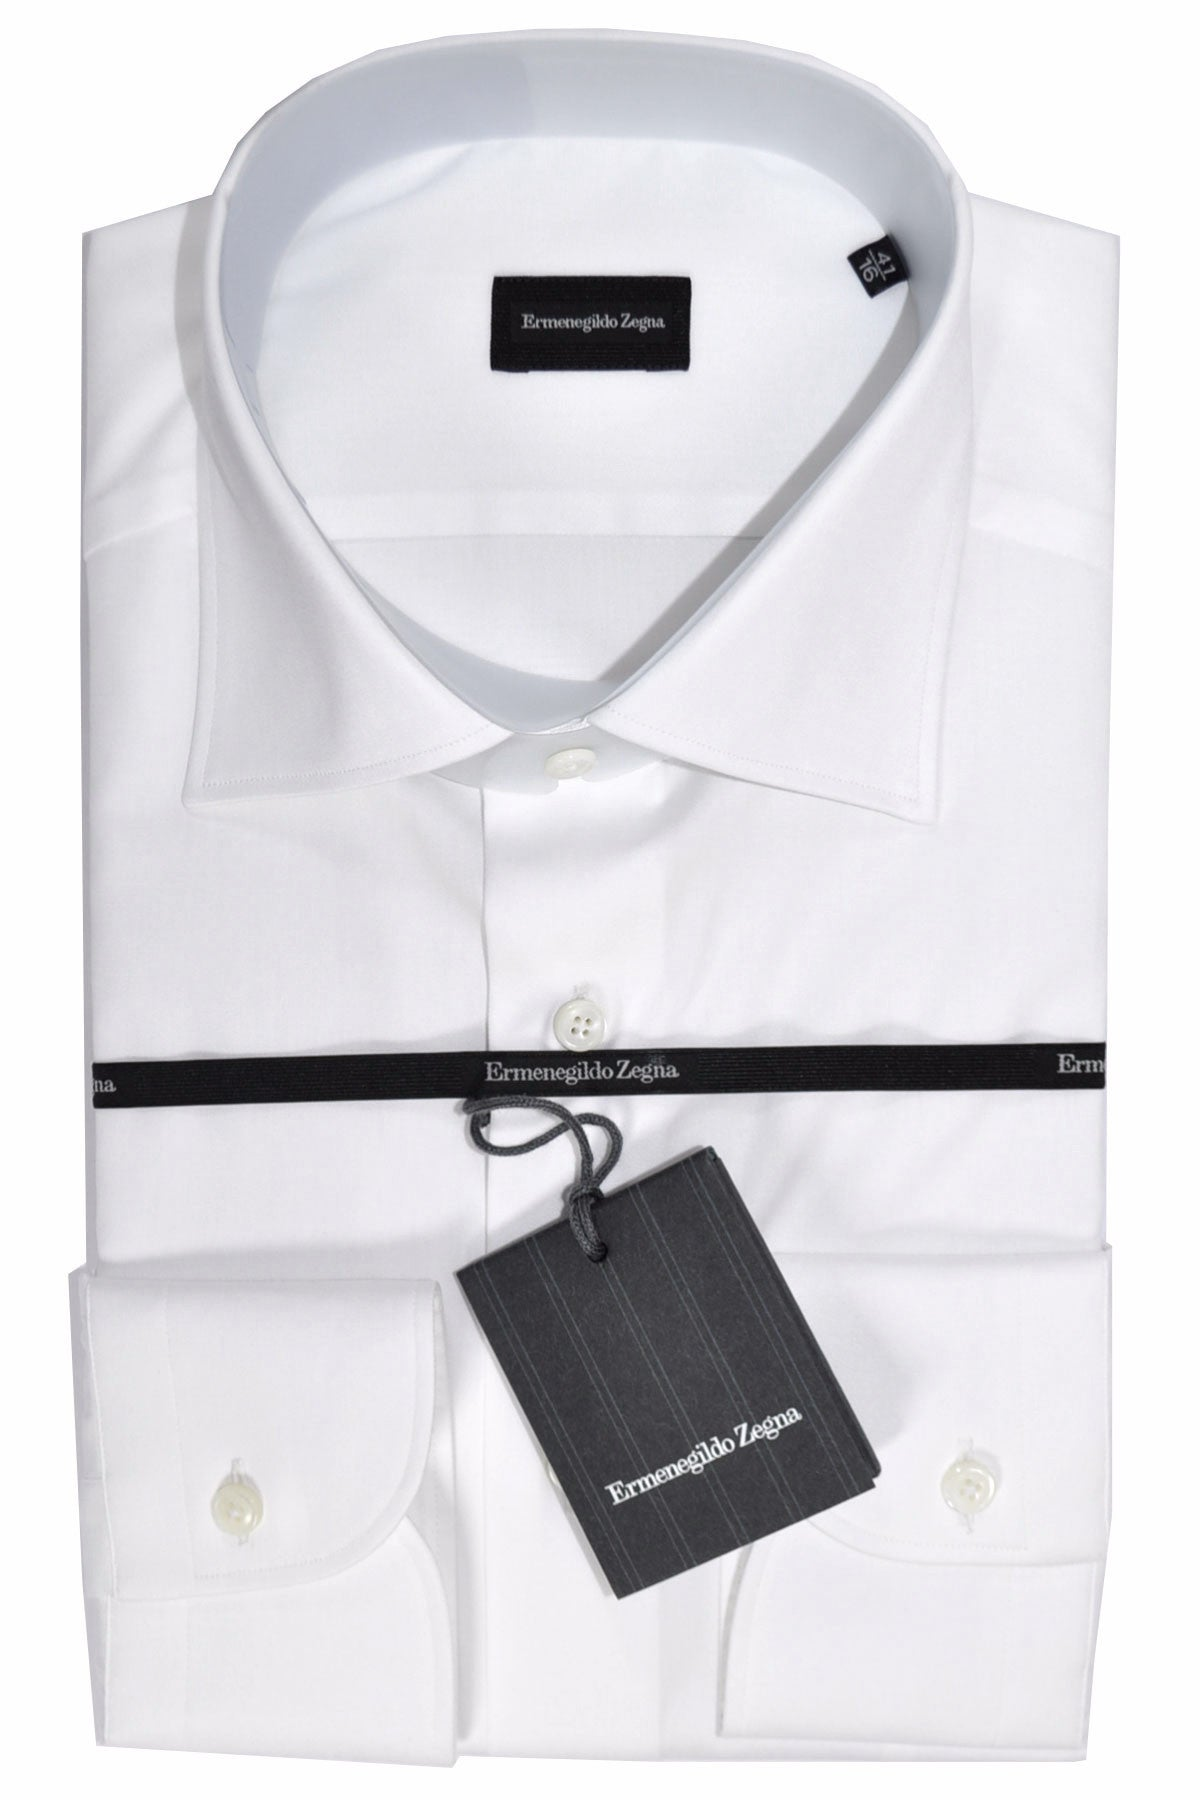 5a23864c Ermenegildo Zegna Dress Shirt White Front Pocket - 38 - 15 Regular Fit